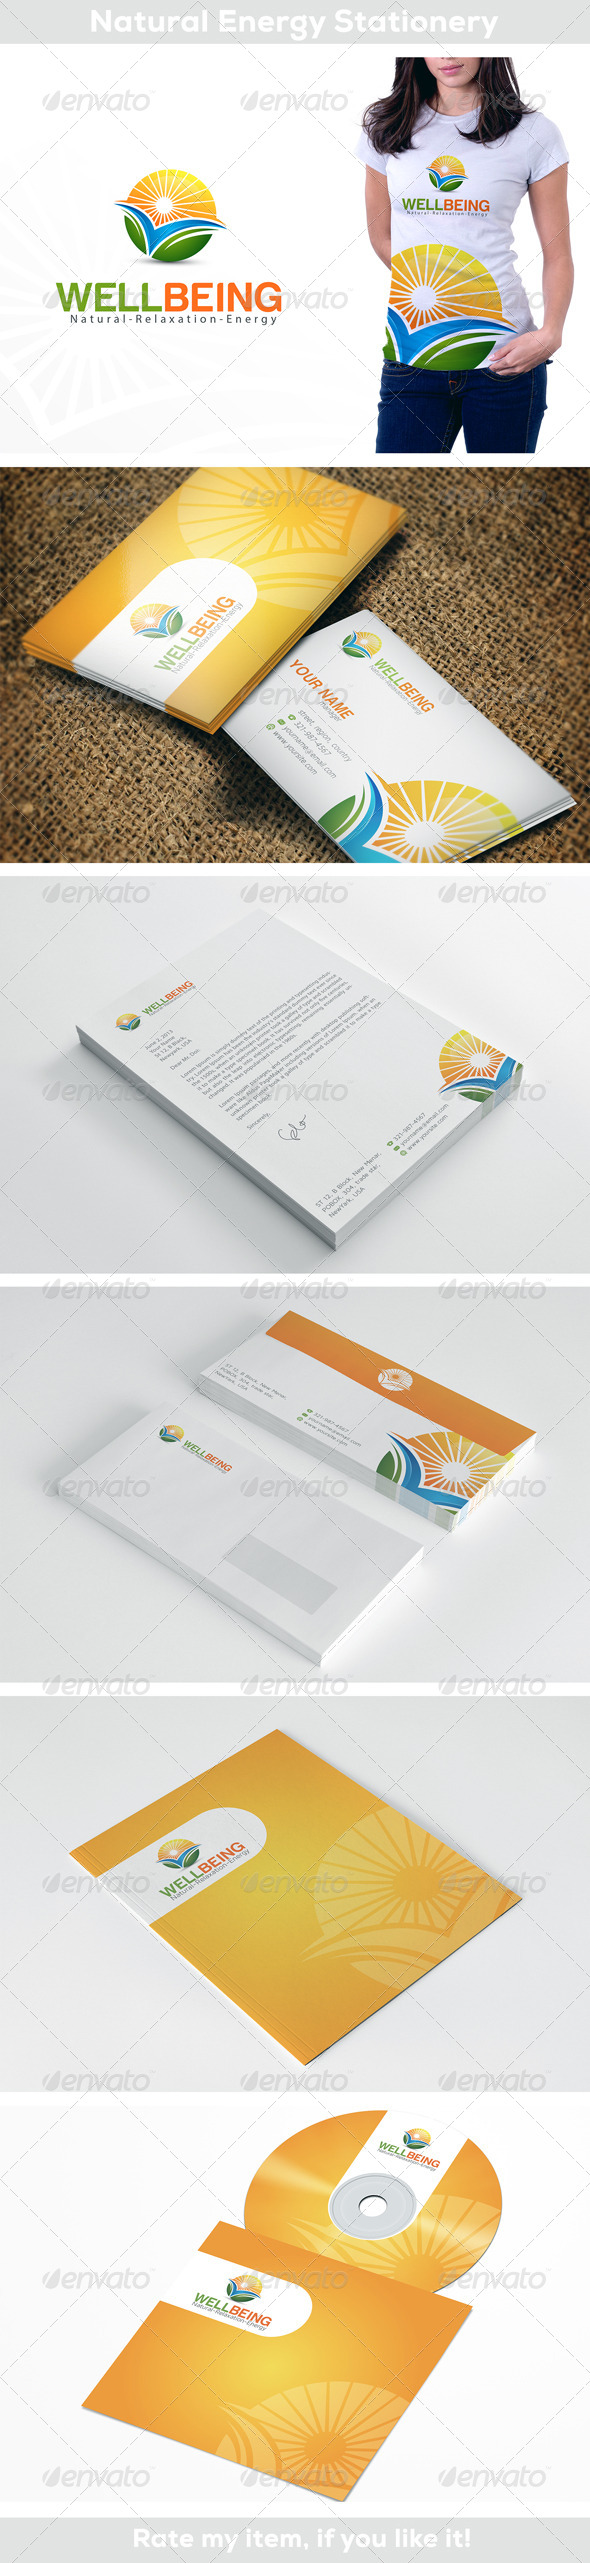 Natural Energy - Stationery Print Templates